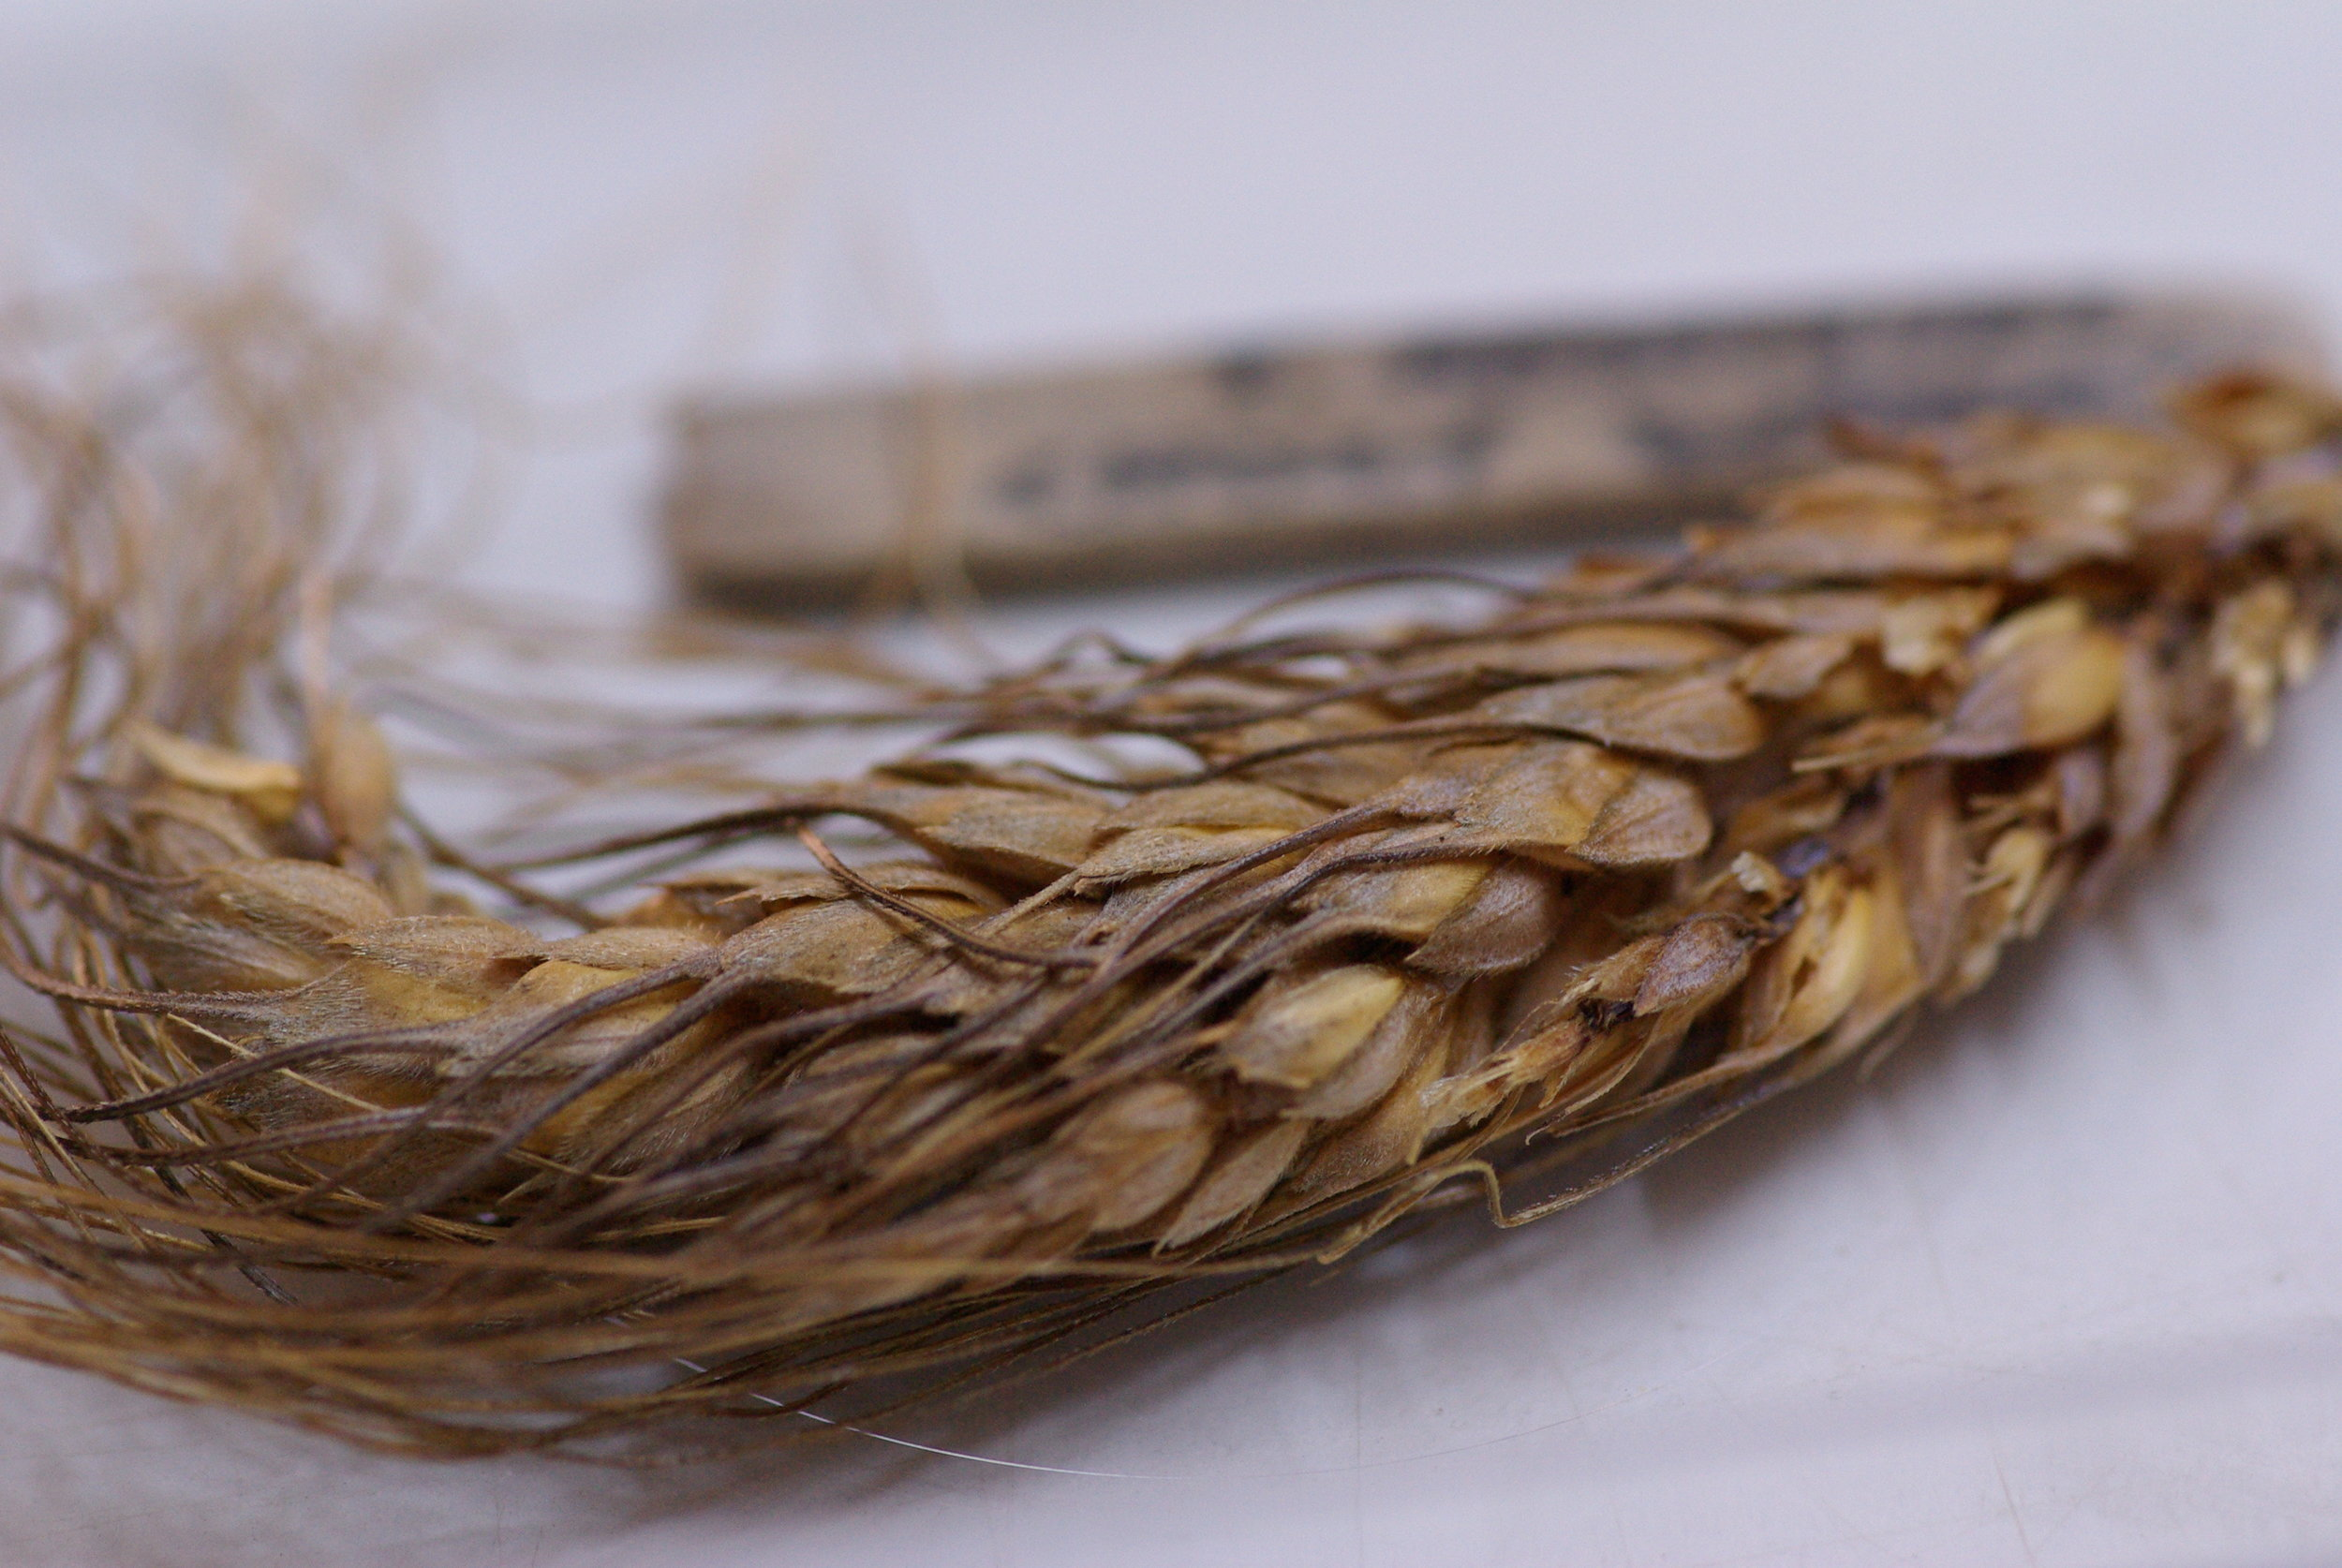 Among the economic plants, we have some specimens from crops such as einkorn and a branching wheat, or 'Holy Wheat', which are very rare crops in the region today.